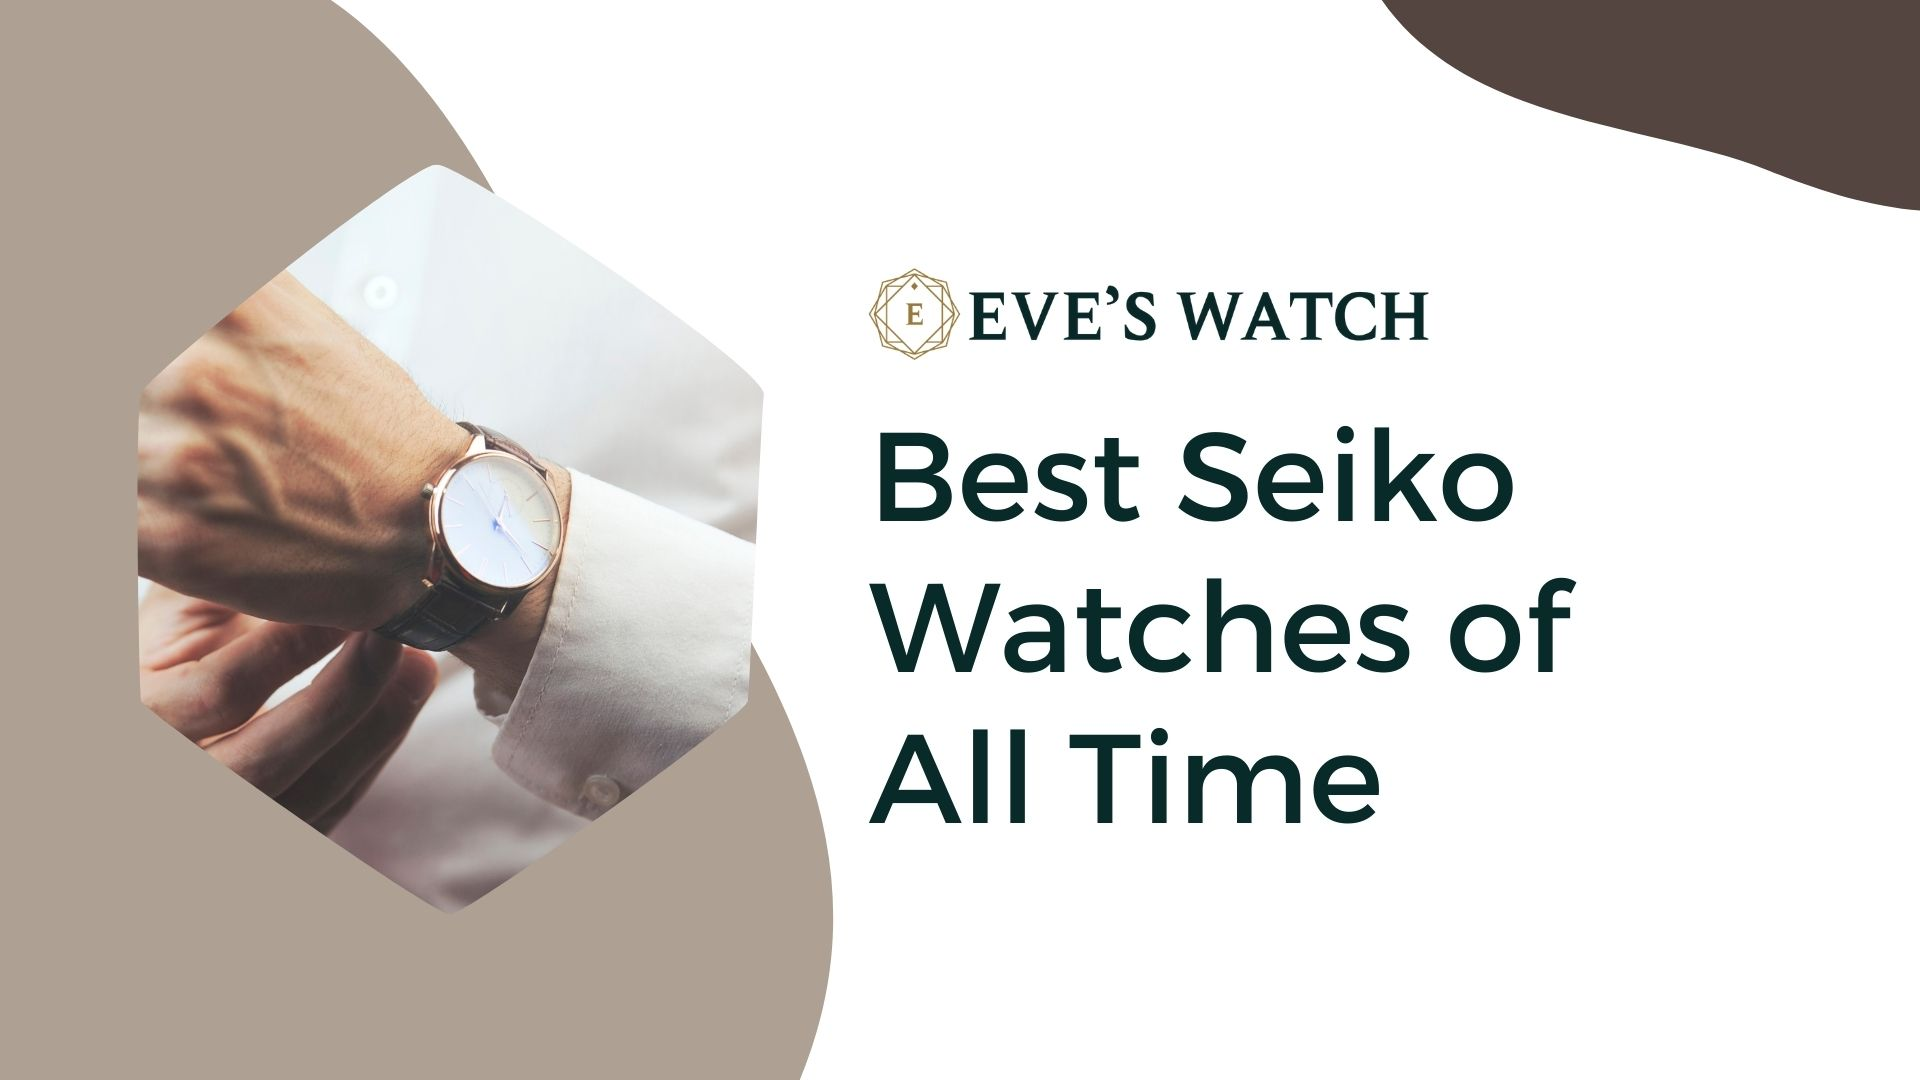 EW-best-seiko-watches-of-all-time